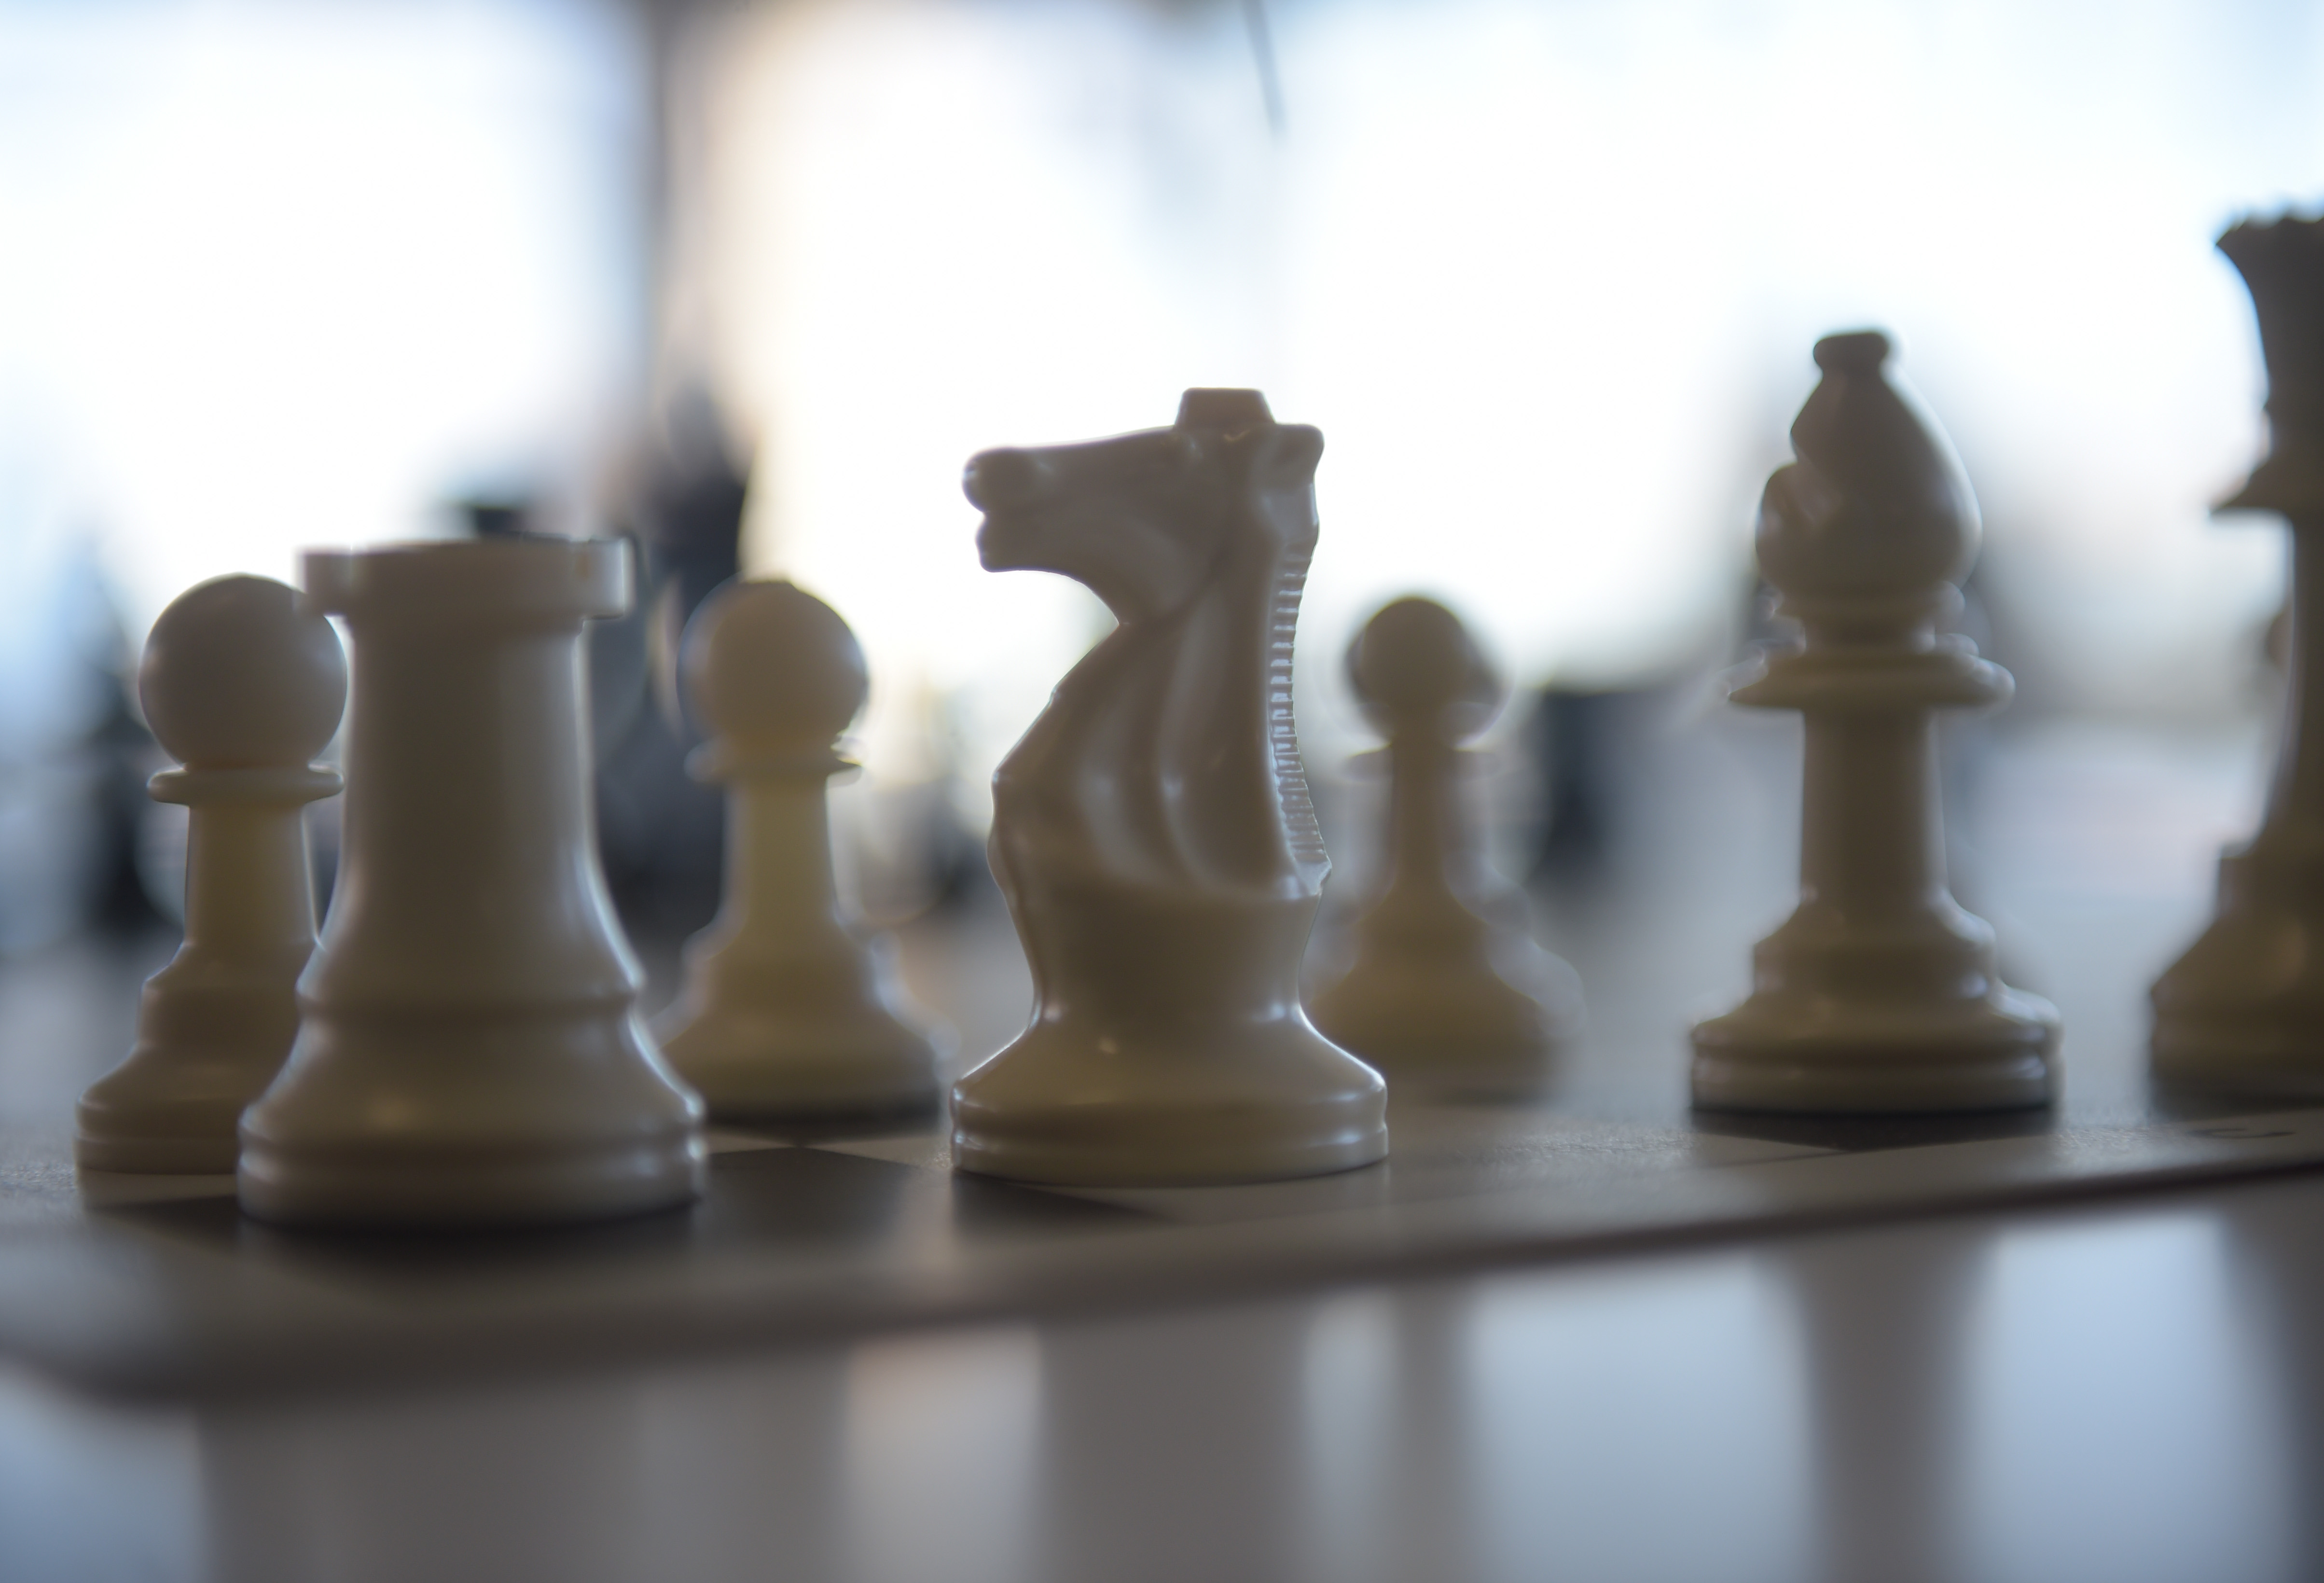 DeepMind's AI became a superhuman chess player in a few hours, just for fun